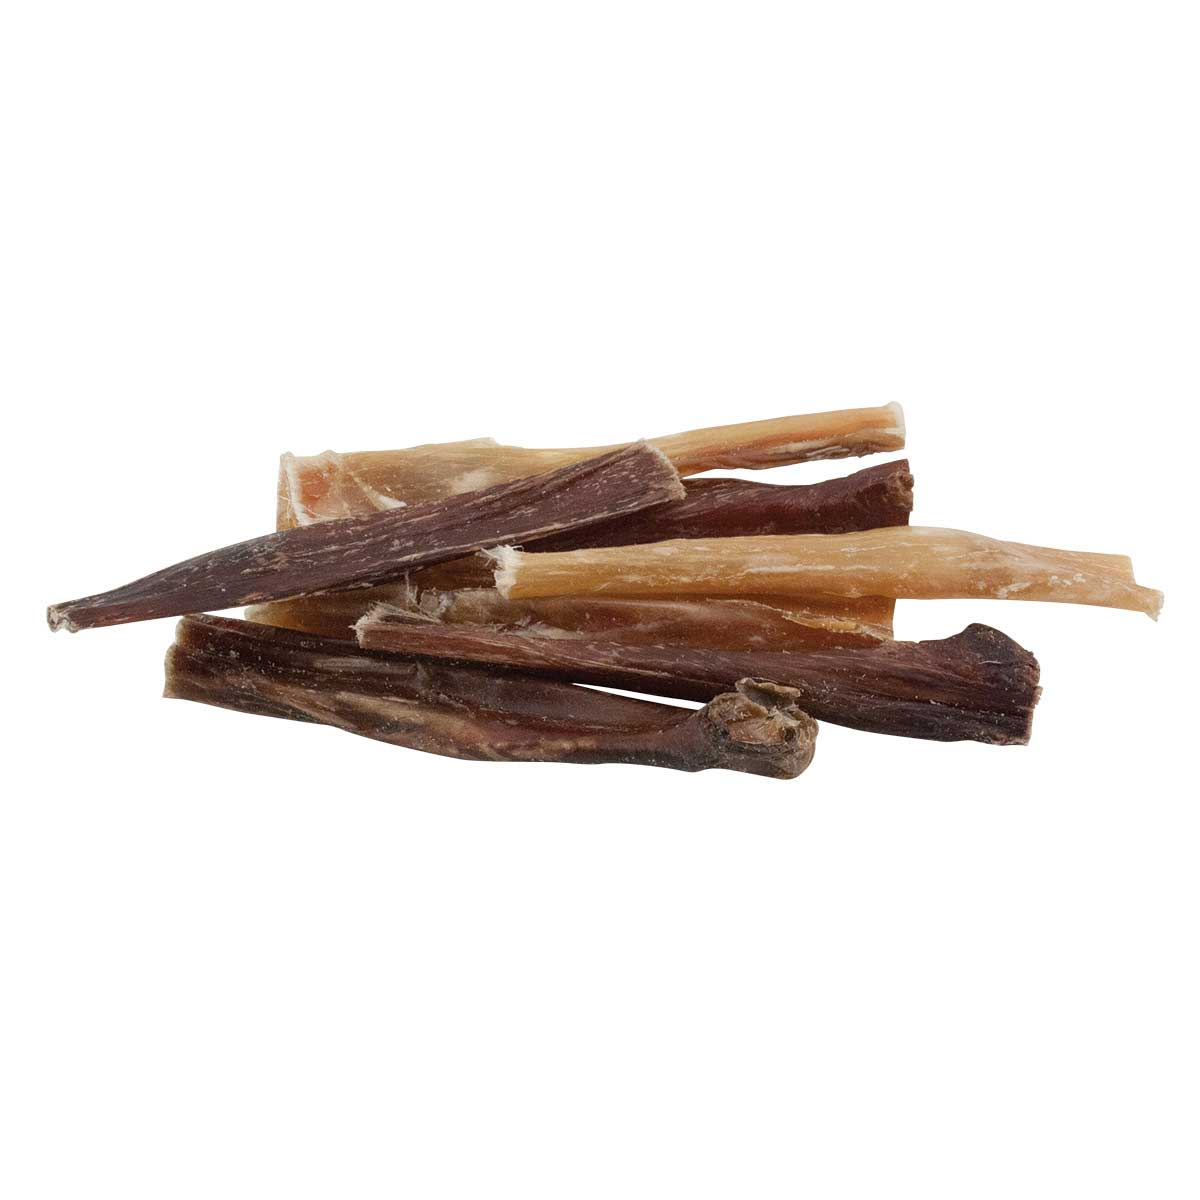 Pet 'n Shape Pizzle Sticks for Dogs 3-4 inch